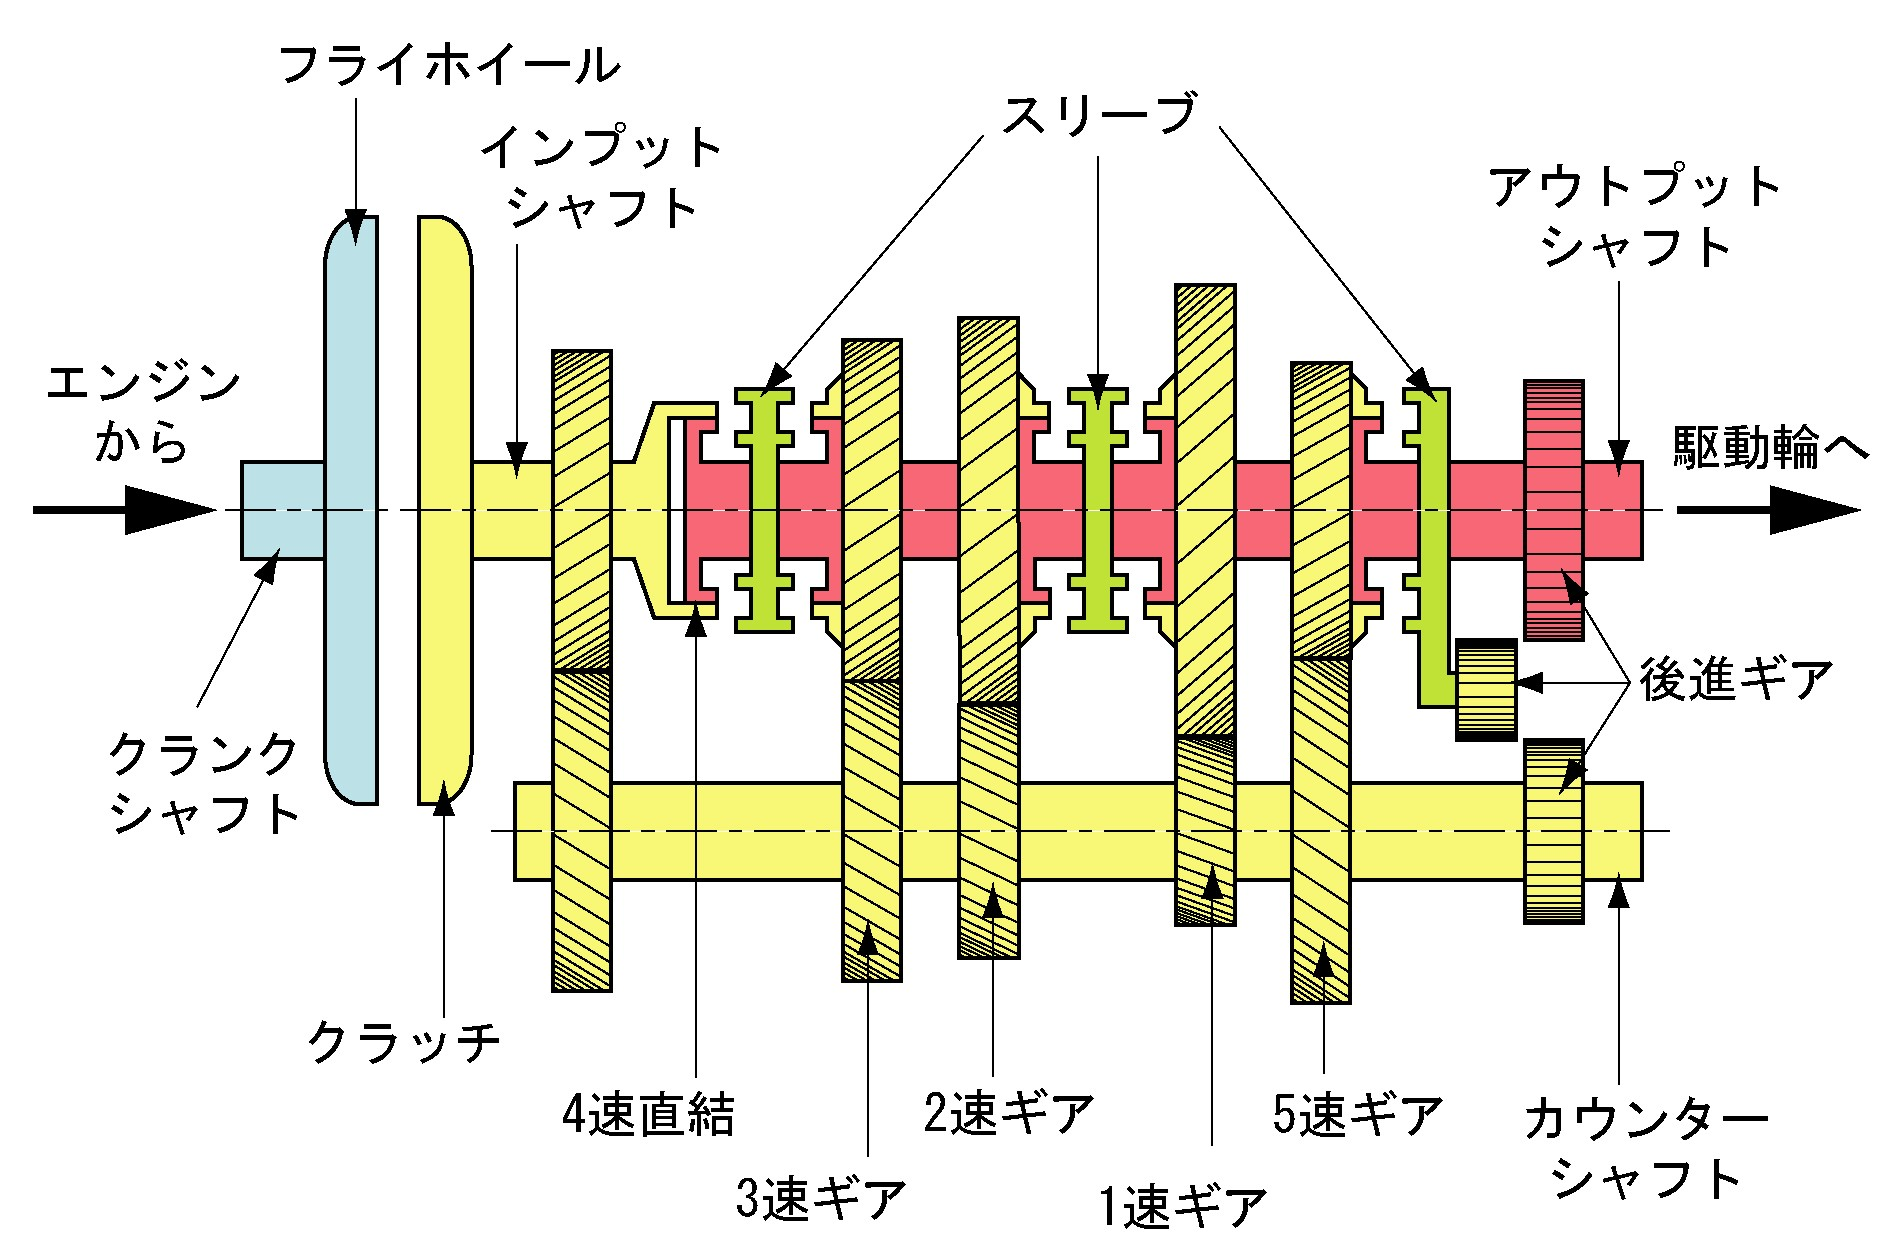 Manual Gearbox Diagram File Internal Structure Of Jeep Gear Box Transmission Wikimedia Mons